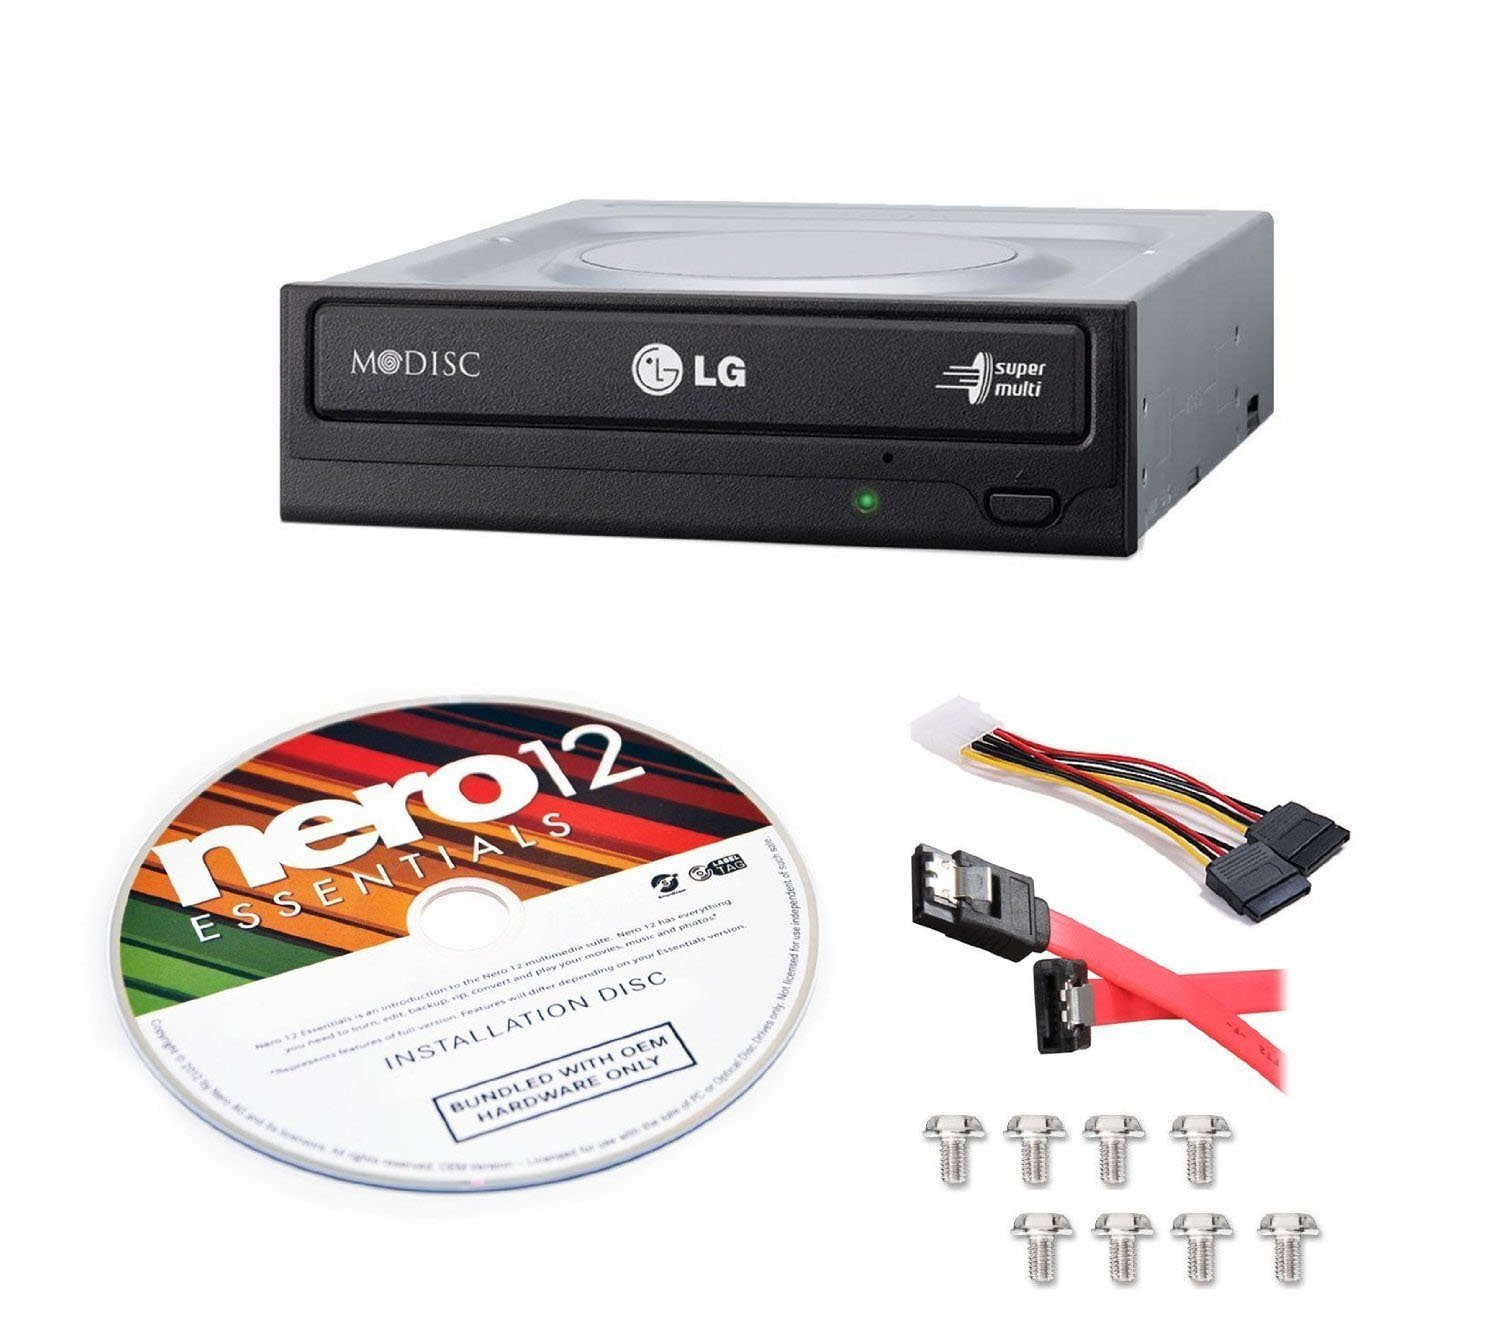 Sh Show Me How To Play A Dvd In My Pc - Amazon com lg internal 24x super multi with m disc support dvd burner gh24nsc0b bundle with nero 12 essentials burning software cable kit computers